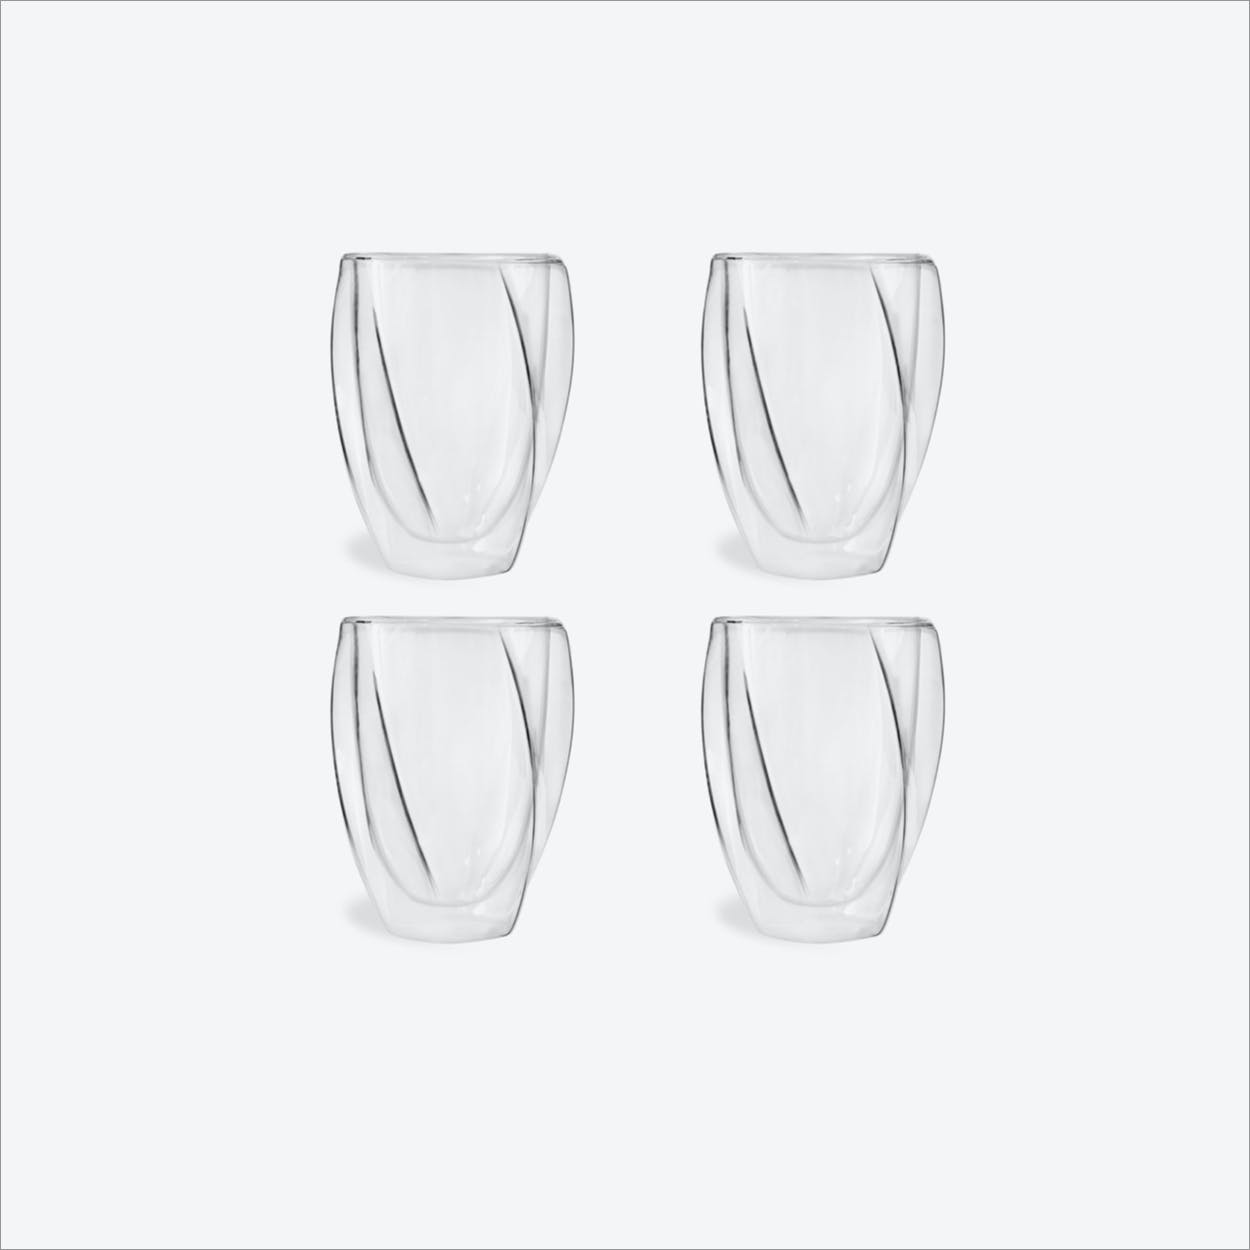 Cristallo Coffee Cup, 300mL (set of 4)